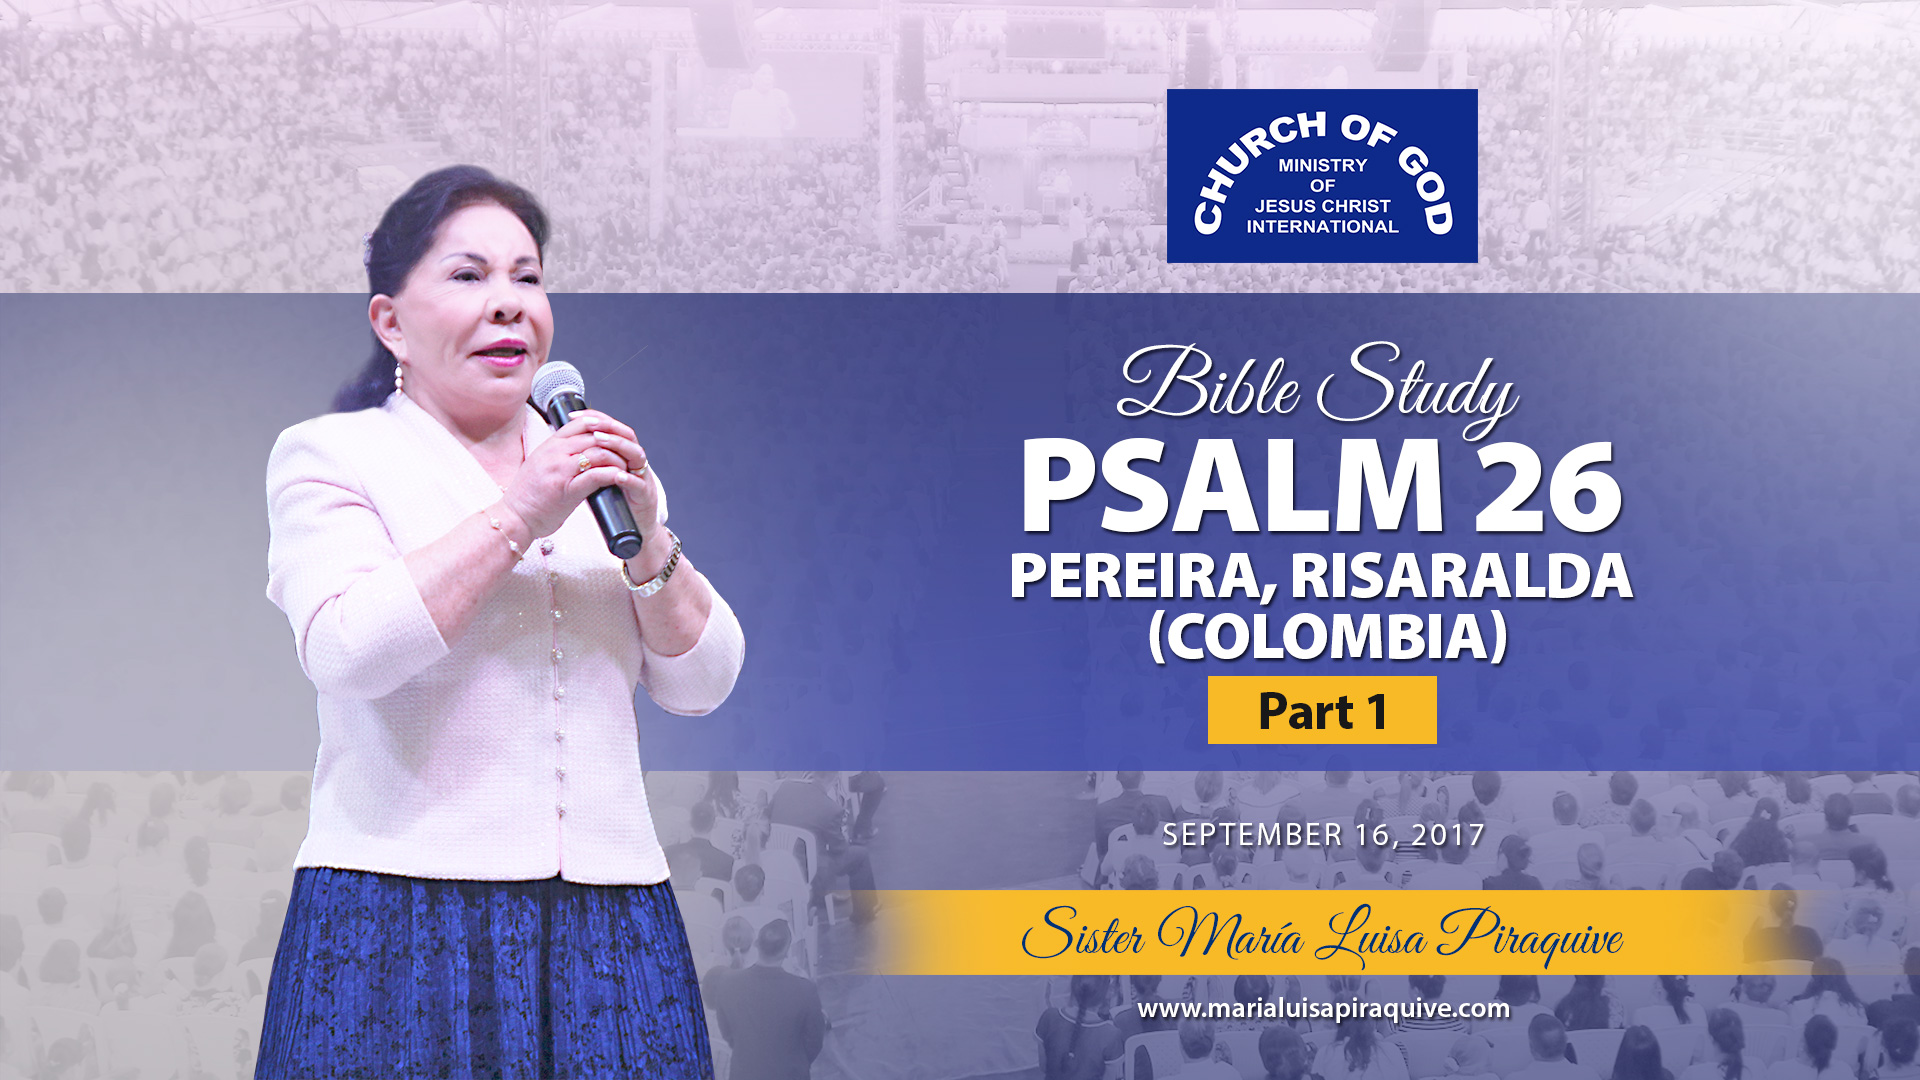 Bible Study Psalm 26 Pereira Colombia Part 1